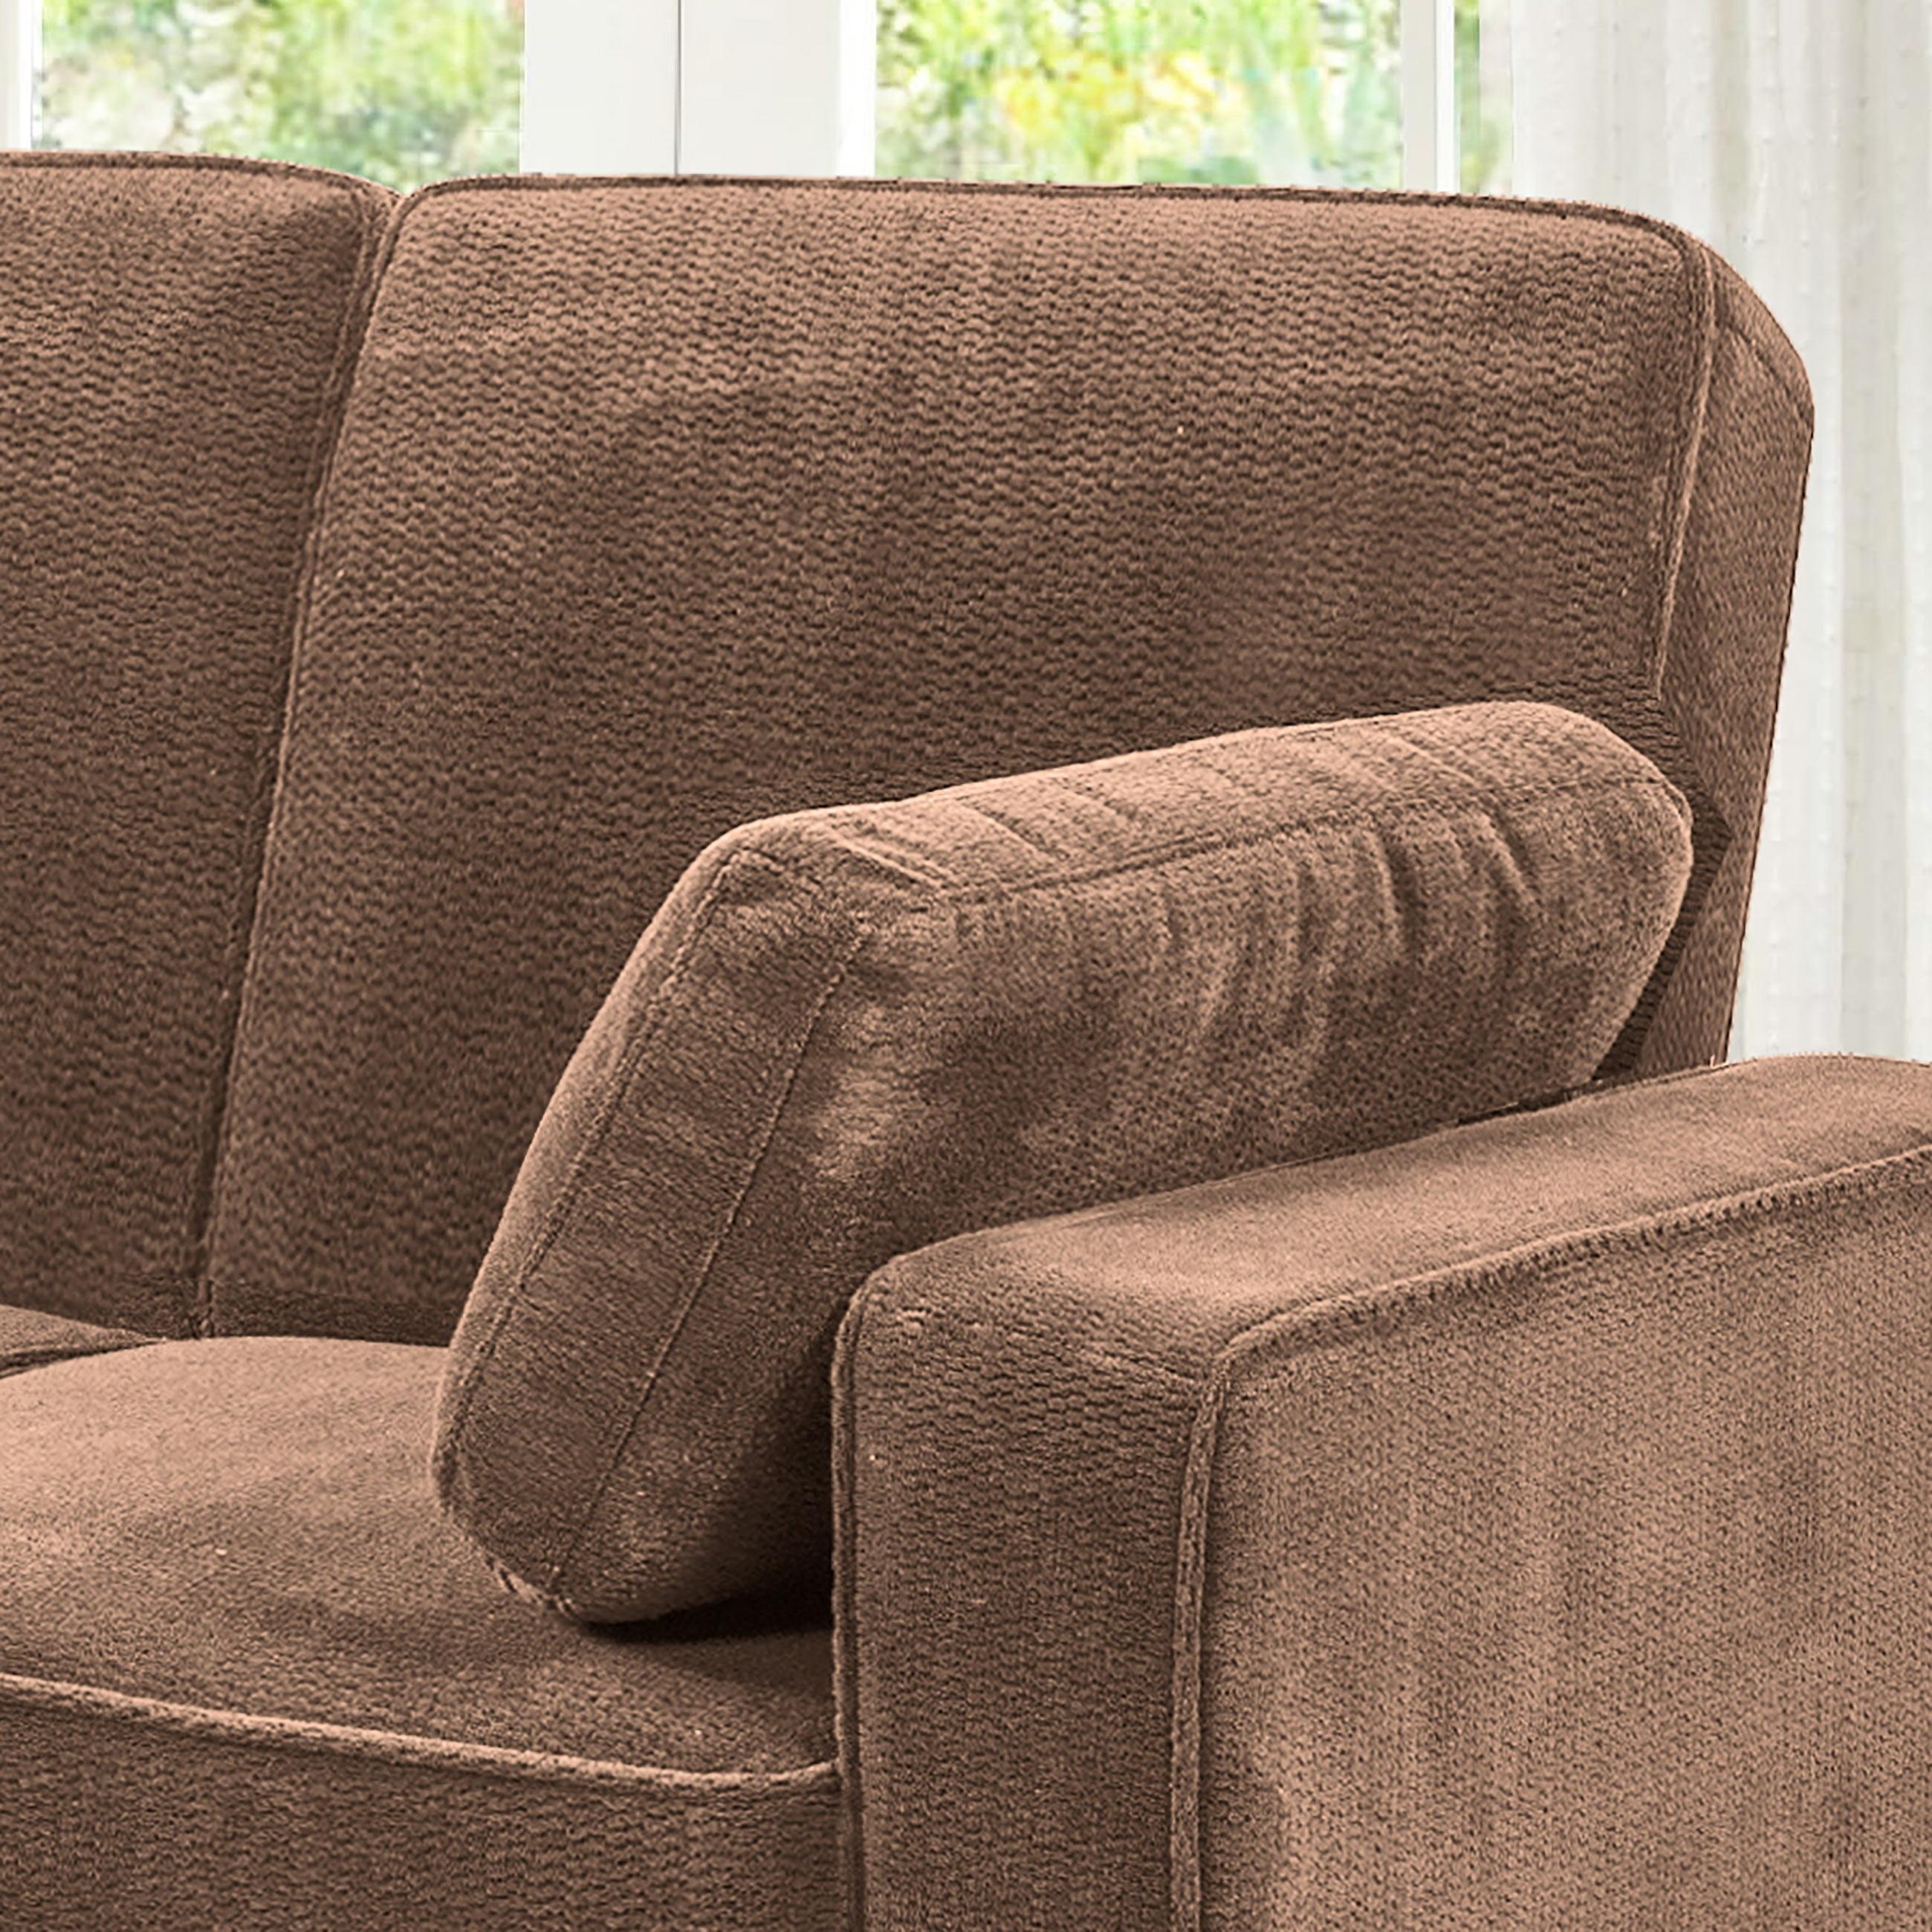 Chaela Sectional Convertible Sofa Light Brownserta / Lifestyle With Regard To Serta Sectional (View 15 of 20)